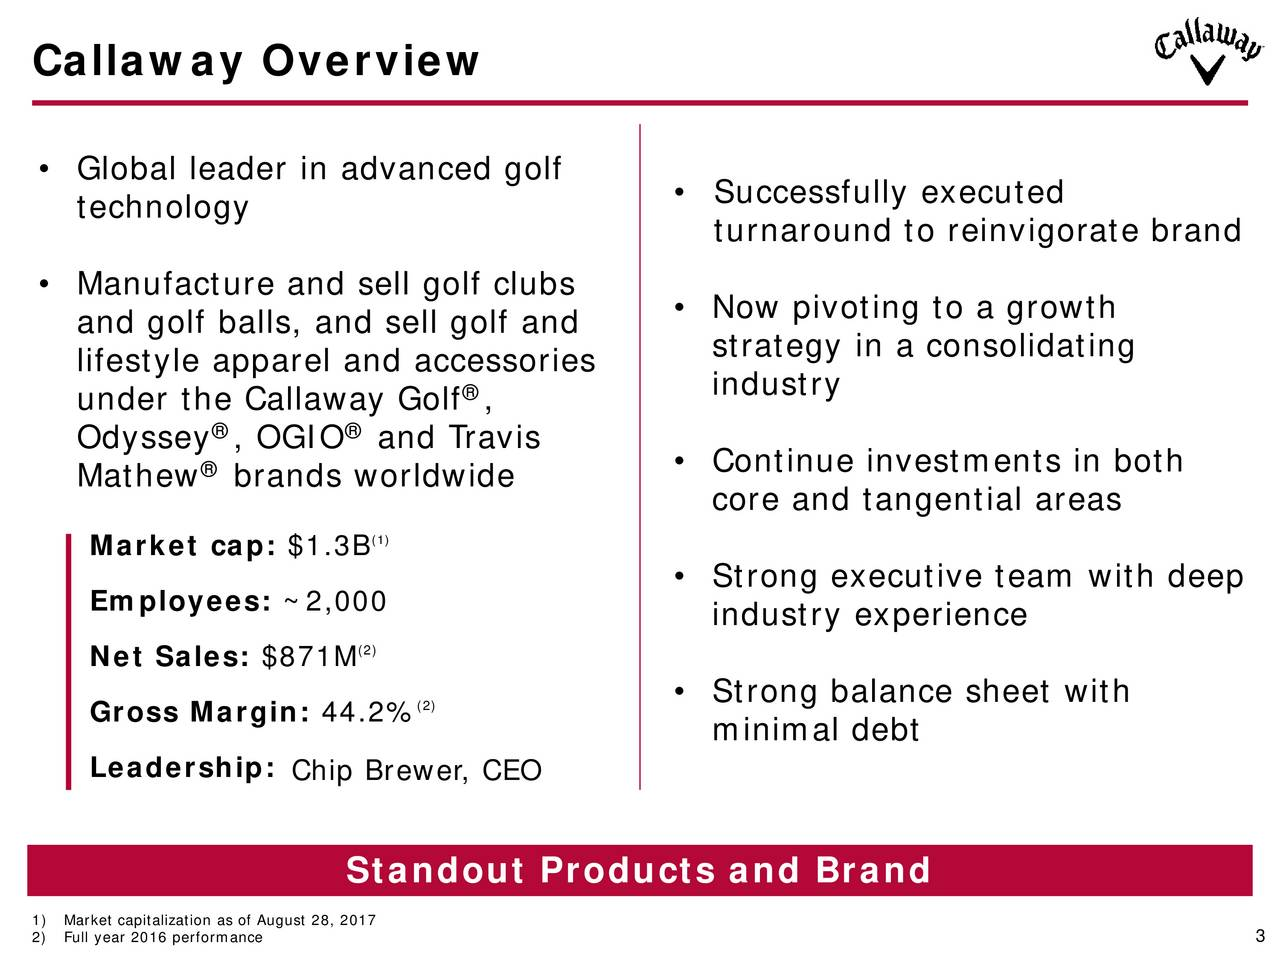 callaway golf company manufacturing inventory Carlsbad, calif, aug 2, 2018 /prnewswire/ -- callaway golf company ely, +137% announced today record sales and earnings for the second quarter and first half of 2018 and increased its full year.